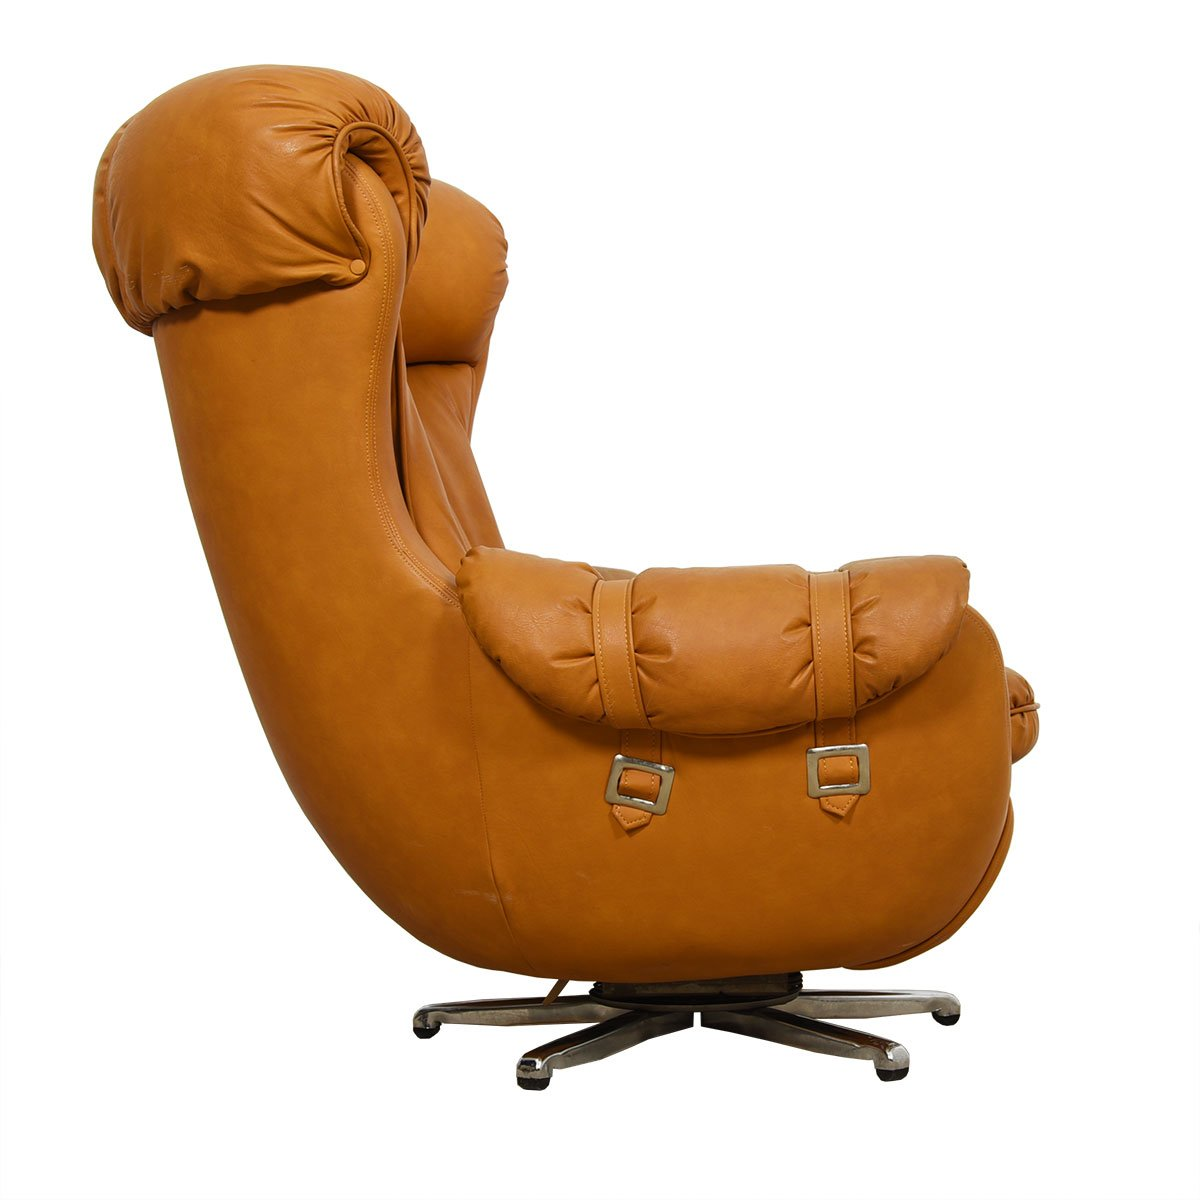 The Marshmallow — Swivel & Reclining Lounge Chair w/ Ottoman